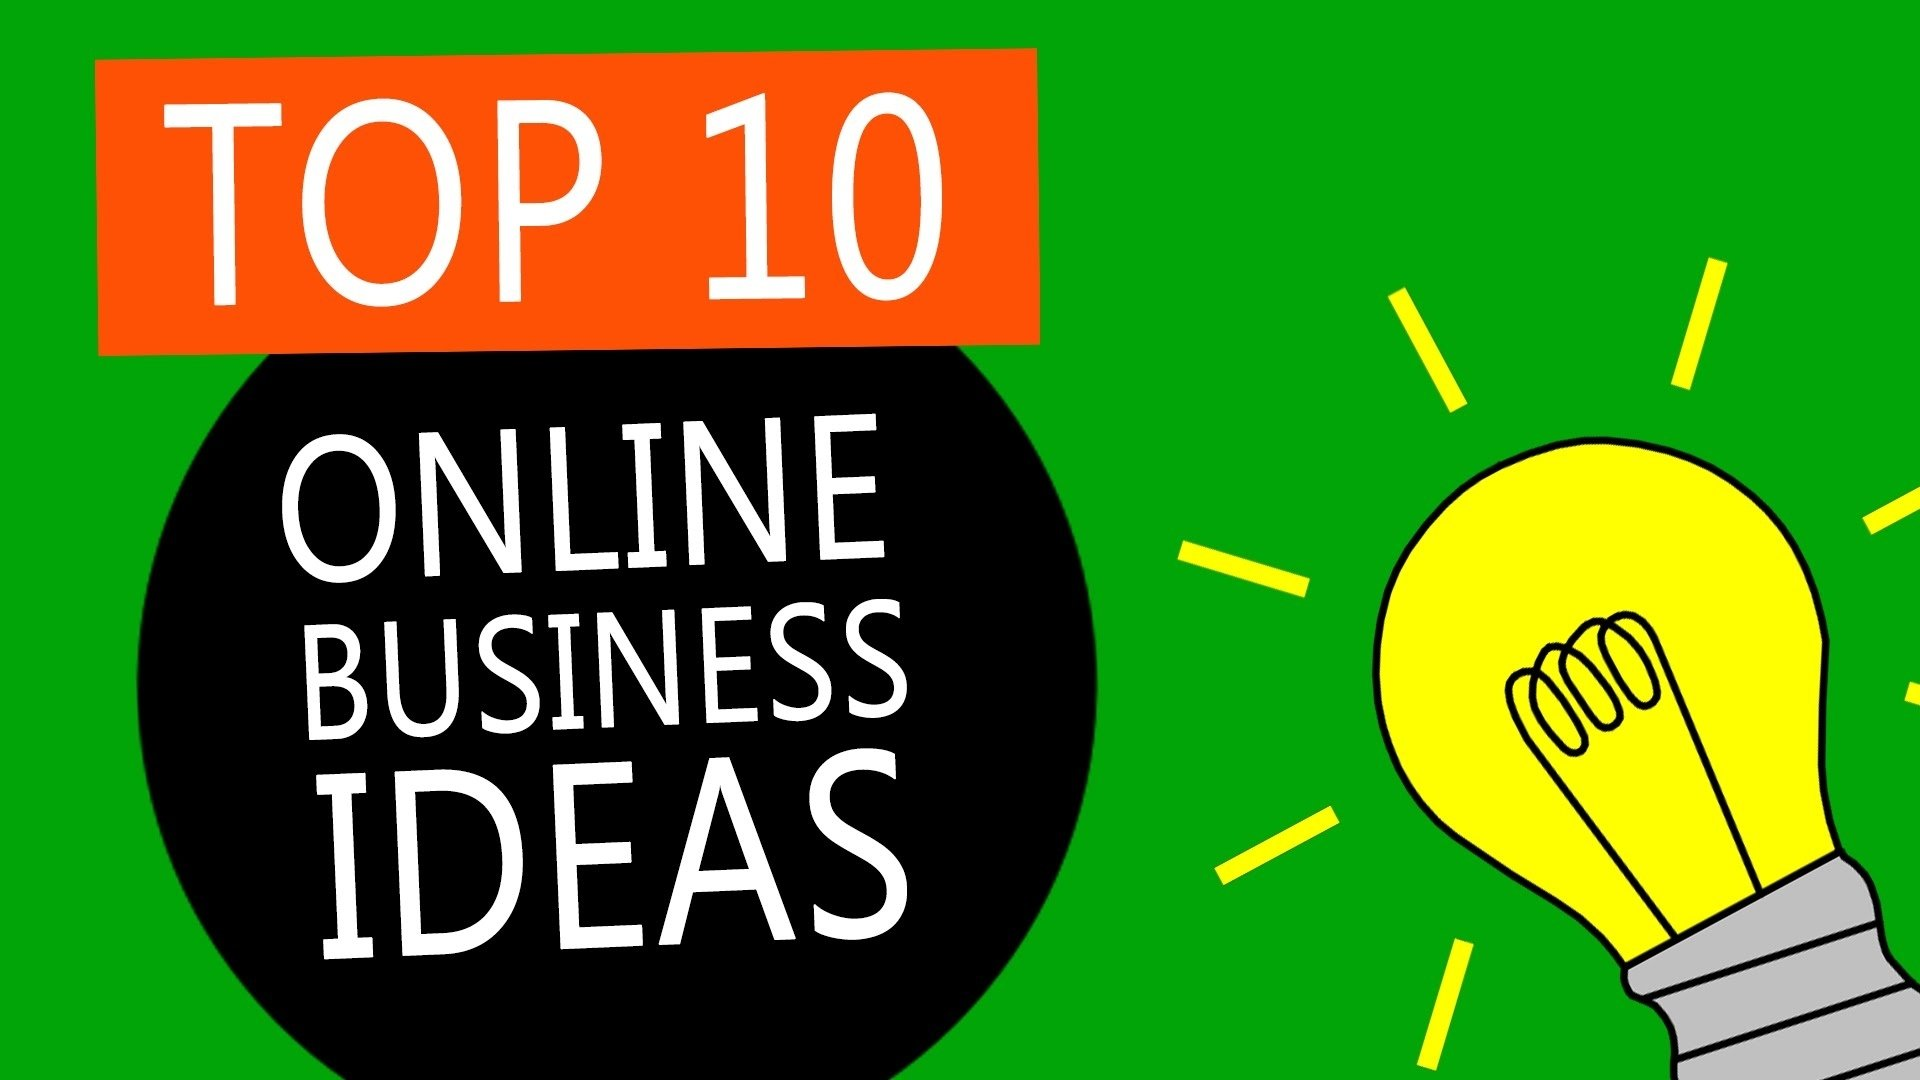 10 Cute Ideas For Starting A Small Business top 10 best online business ideas to start a small business youtube 5